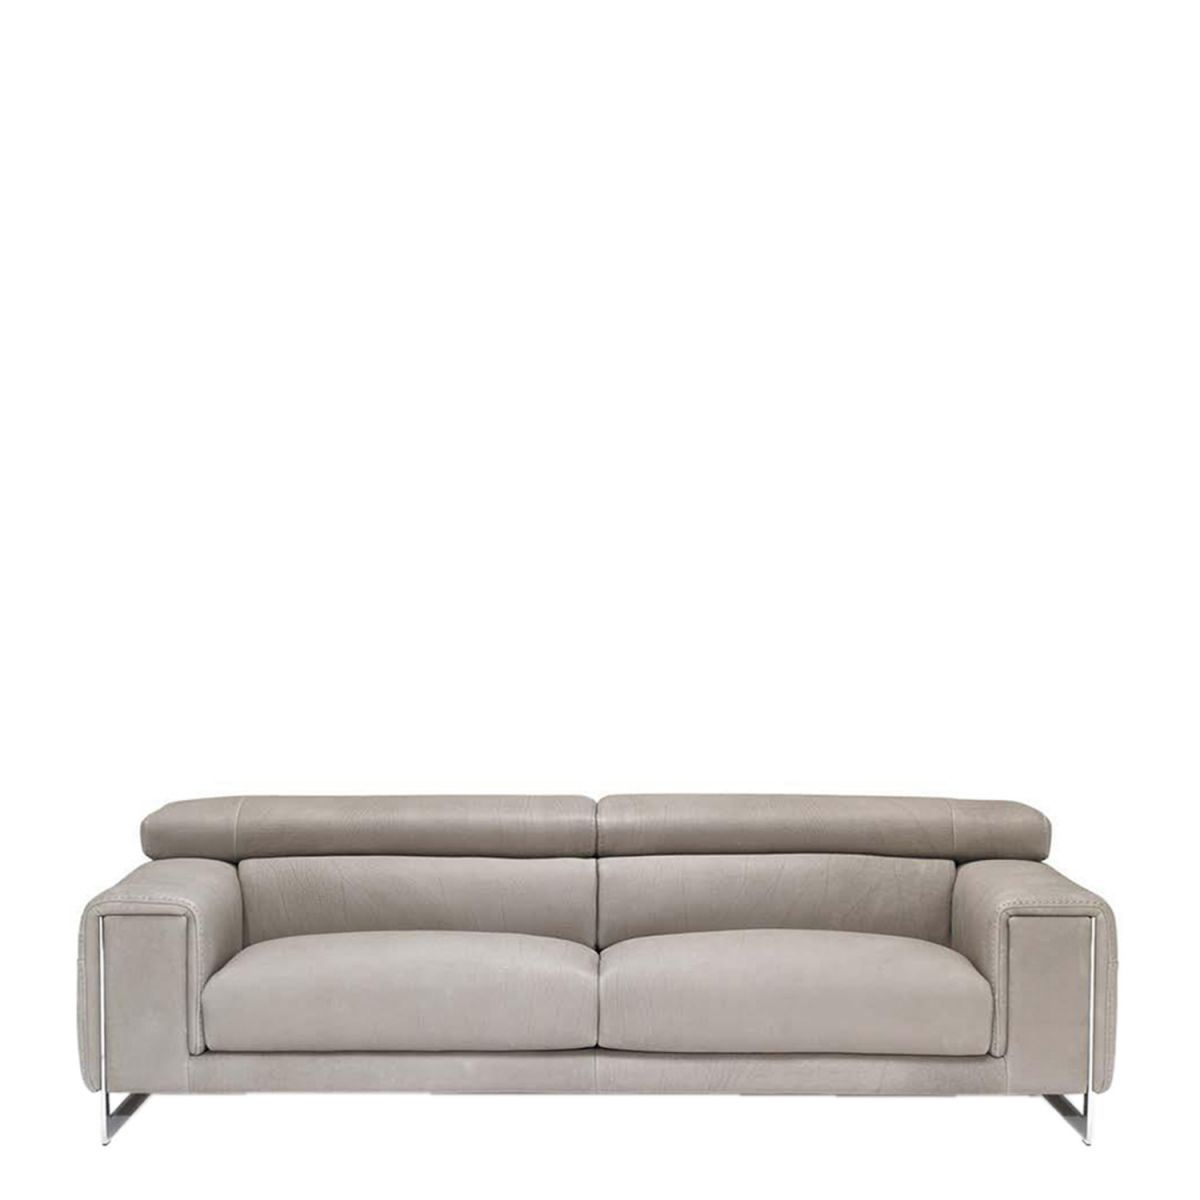 ETOILE Sofa | Living Room Furniture | INspiration Furniture - Vancouver BC